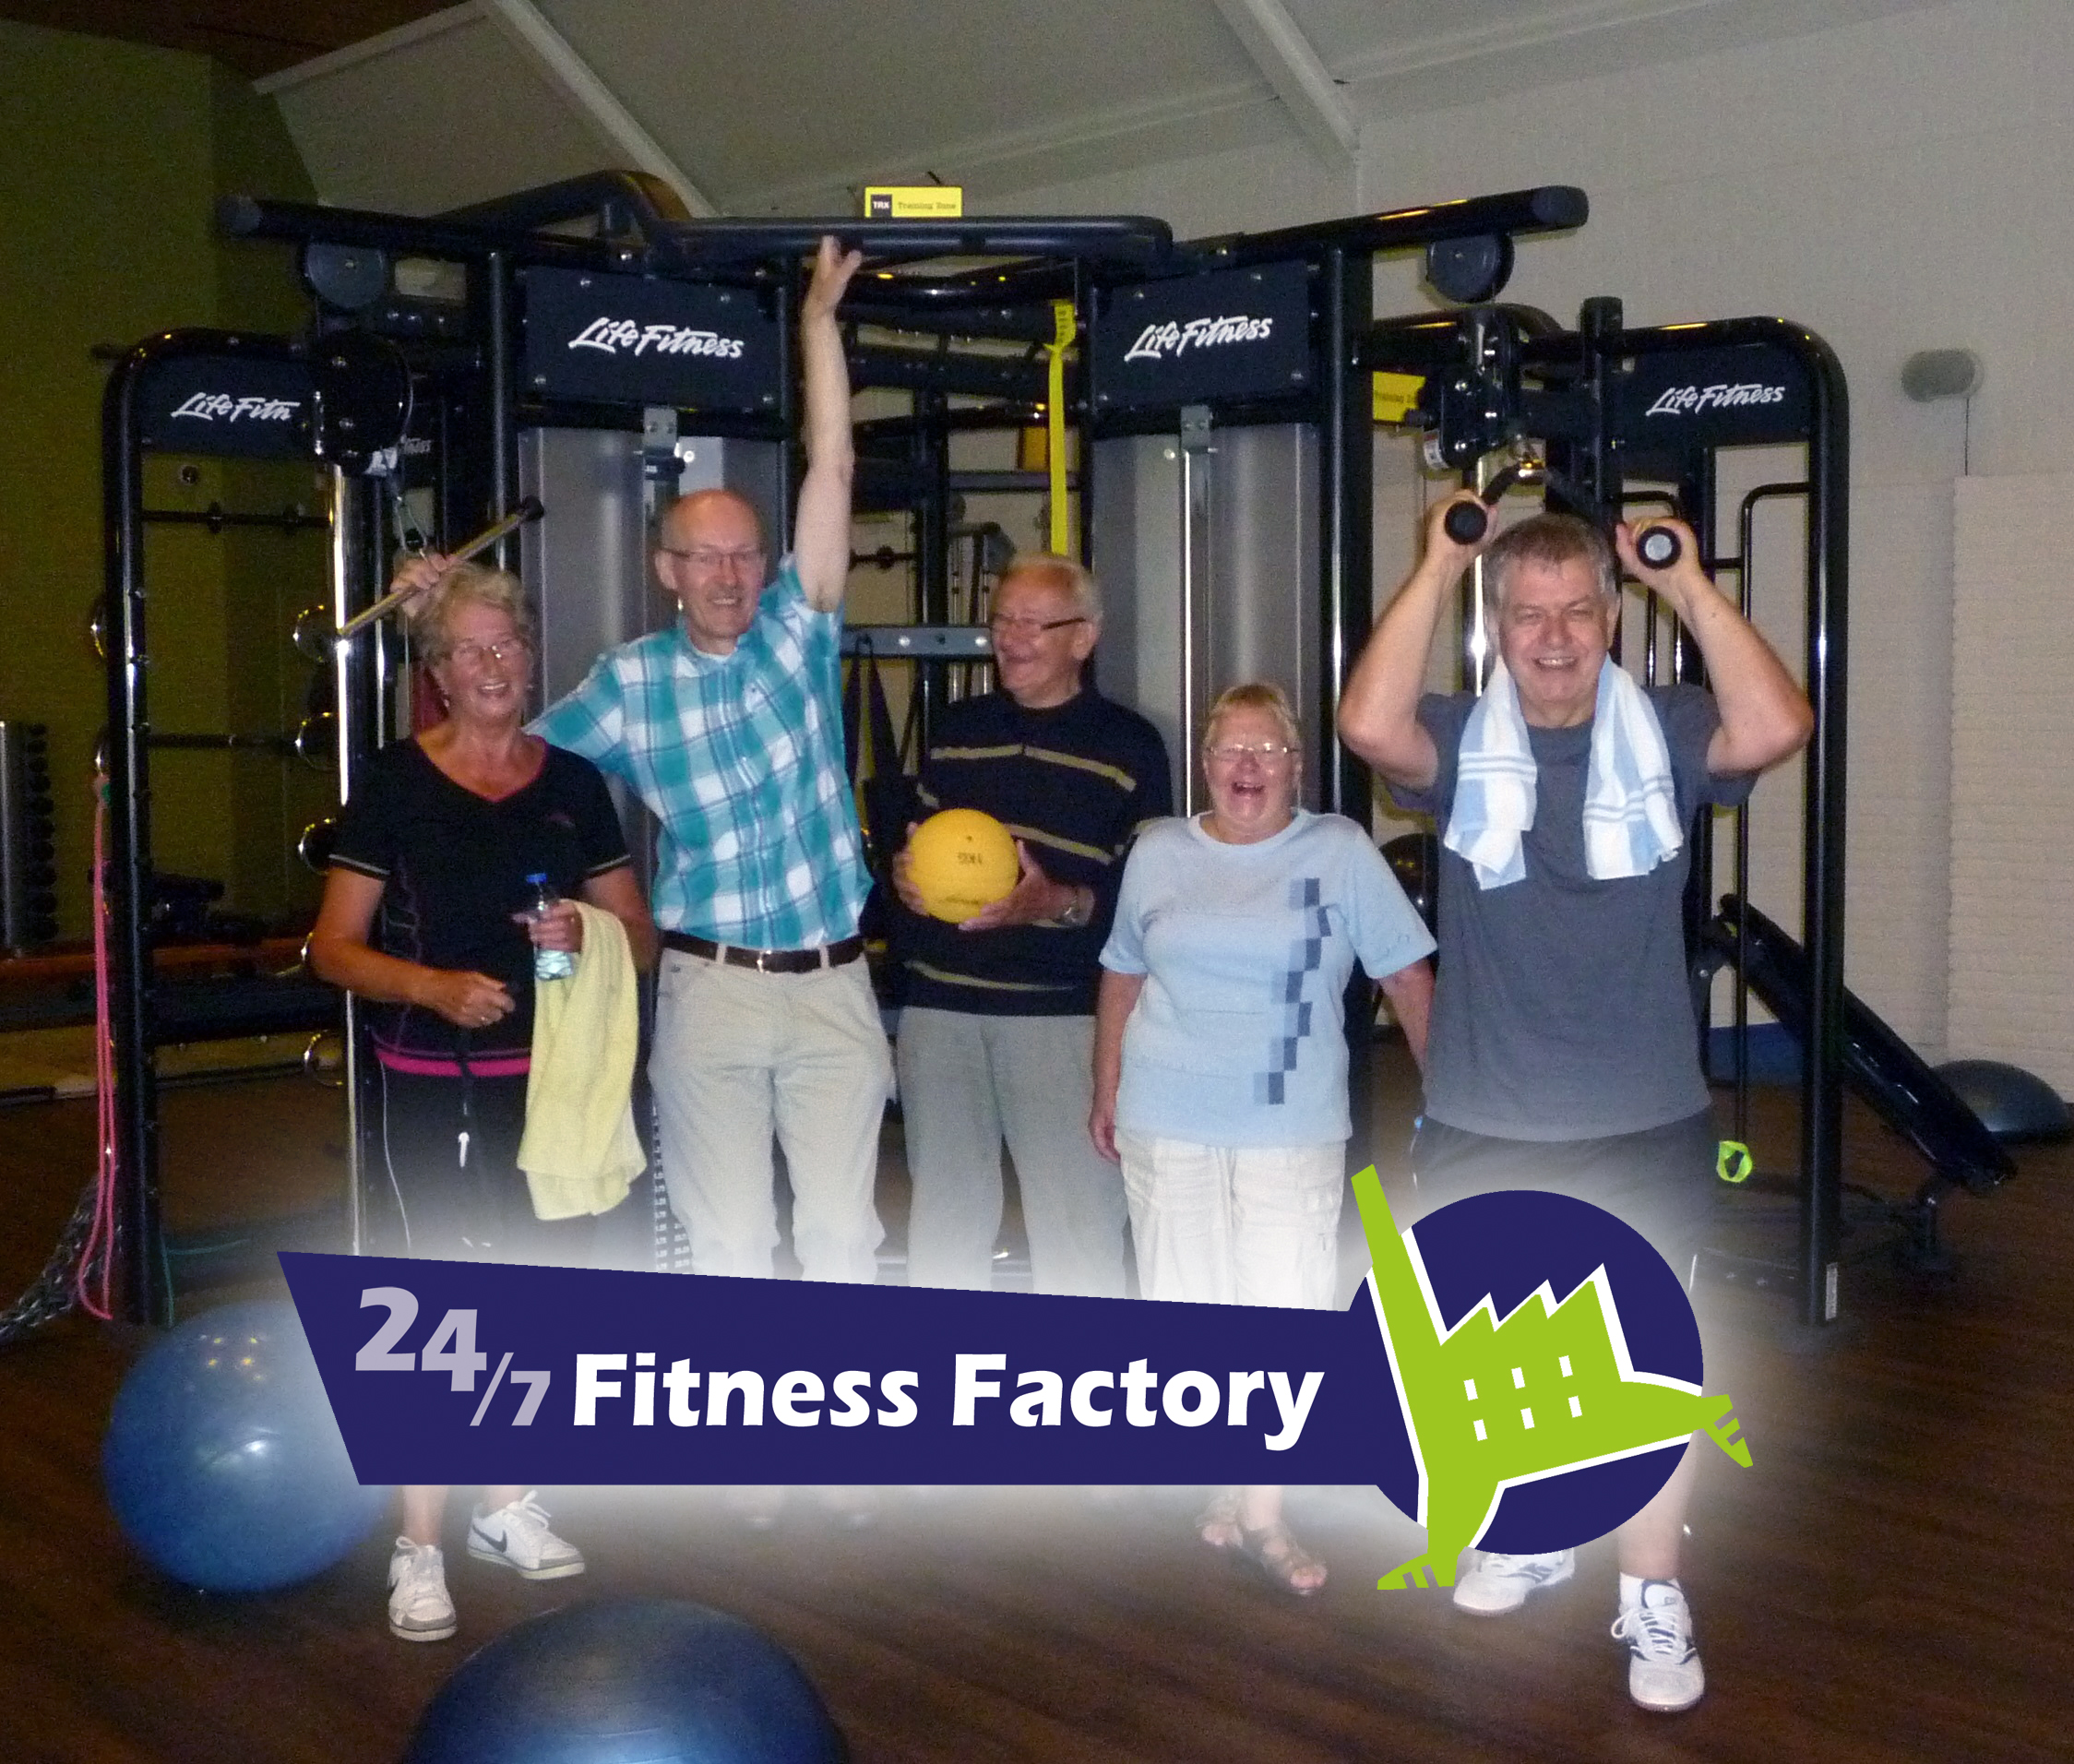 24 7 fitness factory gorssel 60 ffgorssel copy 24 7 for Fitness 24 7 mobilia